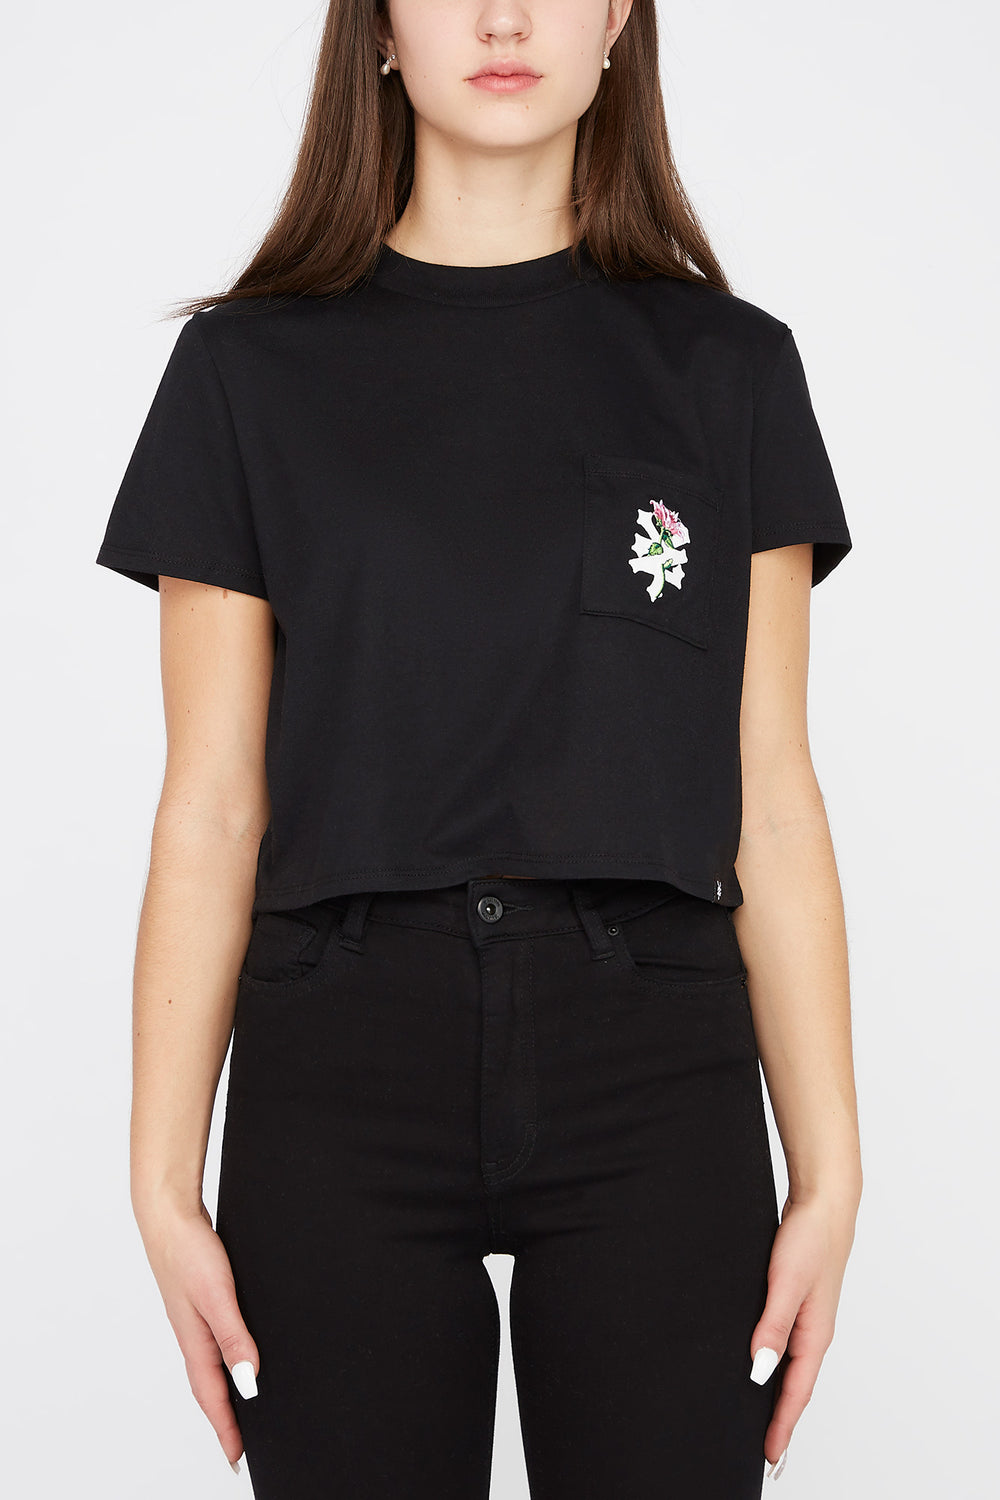 Zoo York Womens Rose Logo Cropped T-Shirt Black